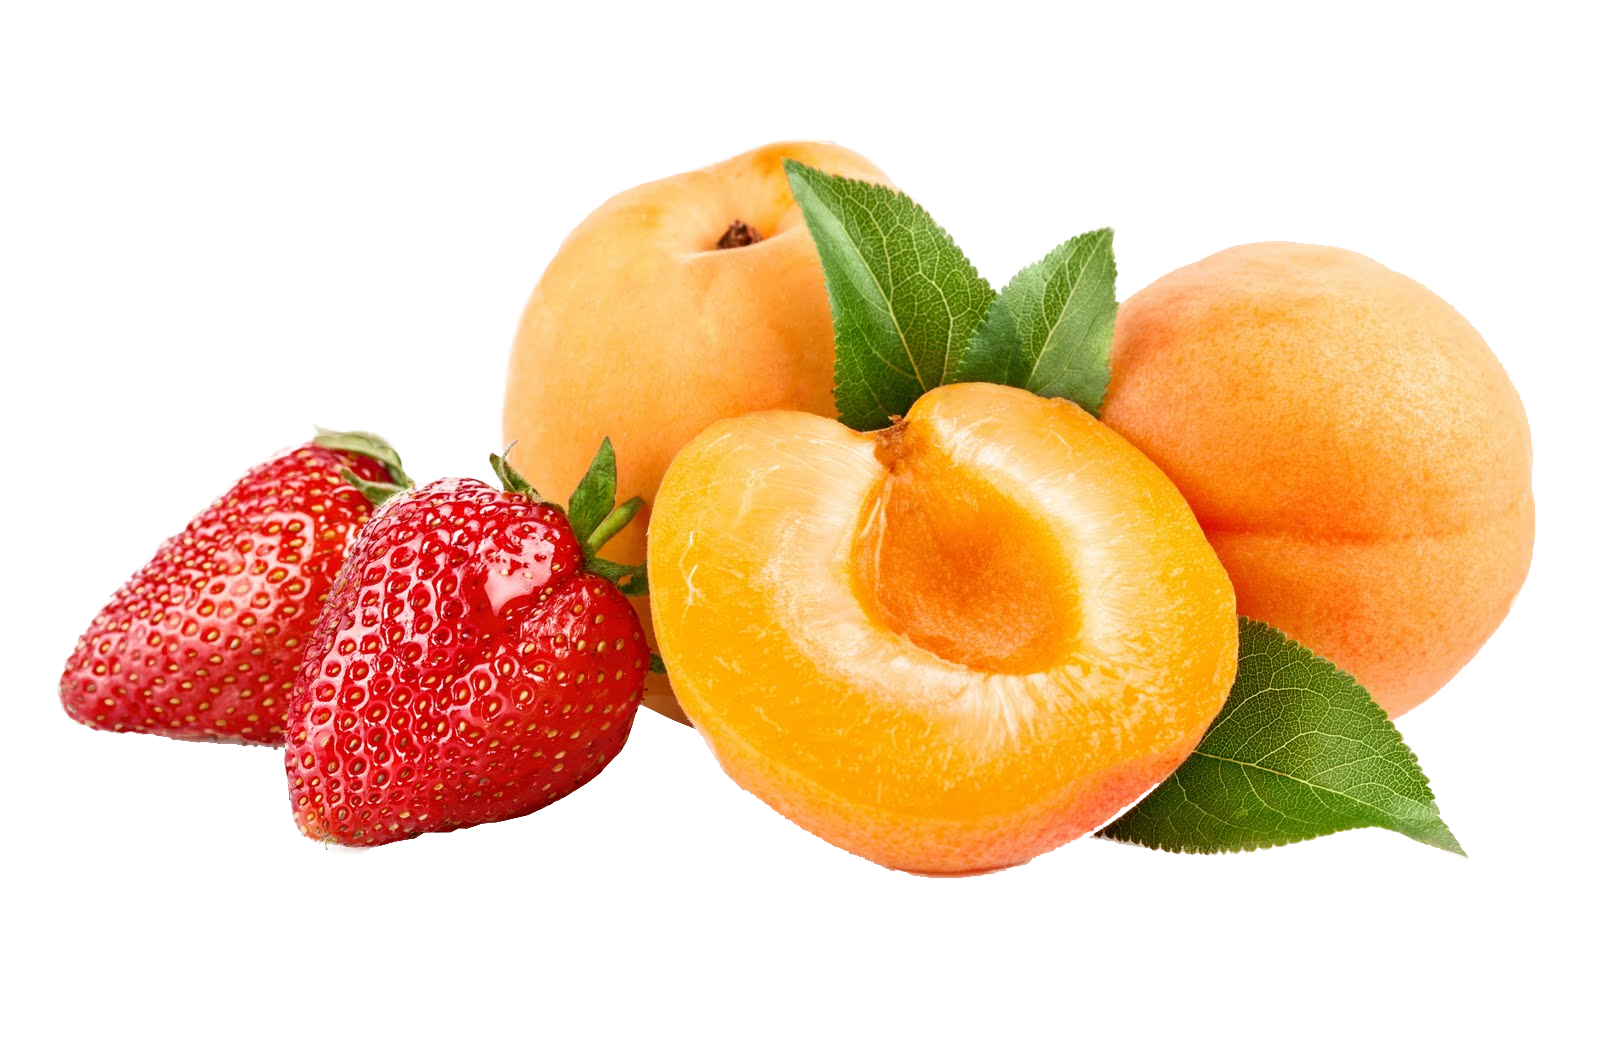 Fruit Png Hd PNG Image - Fruits PNG HD